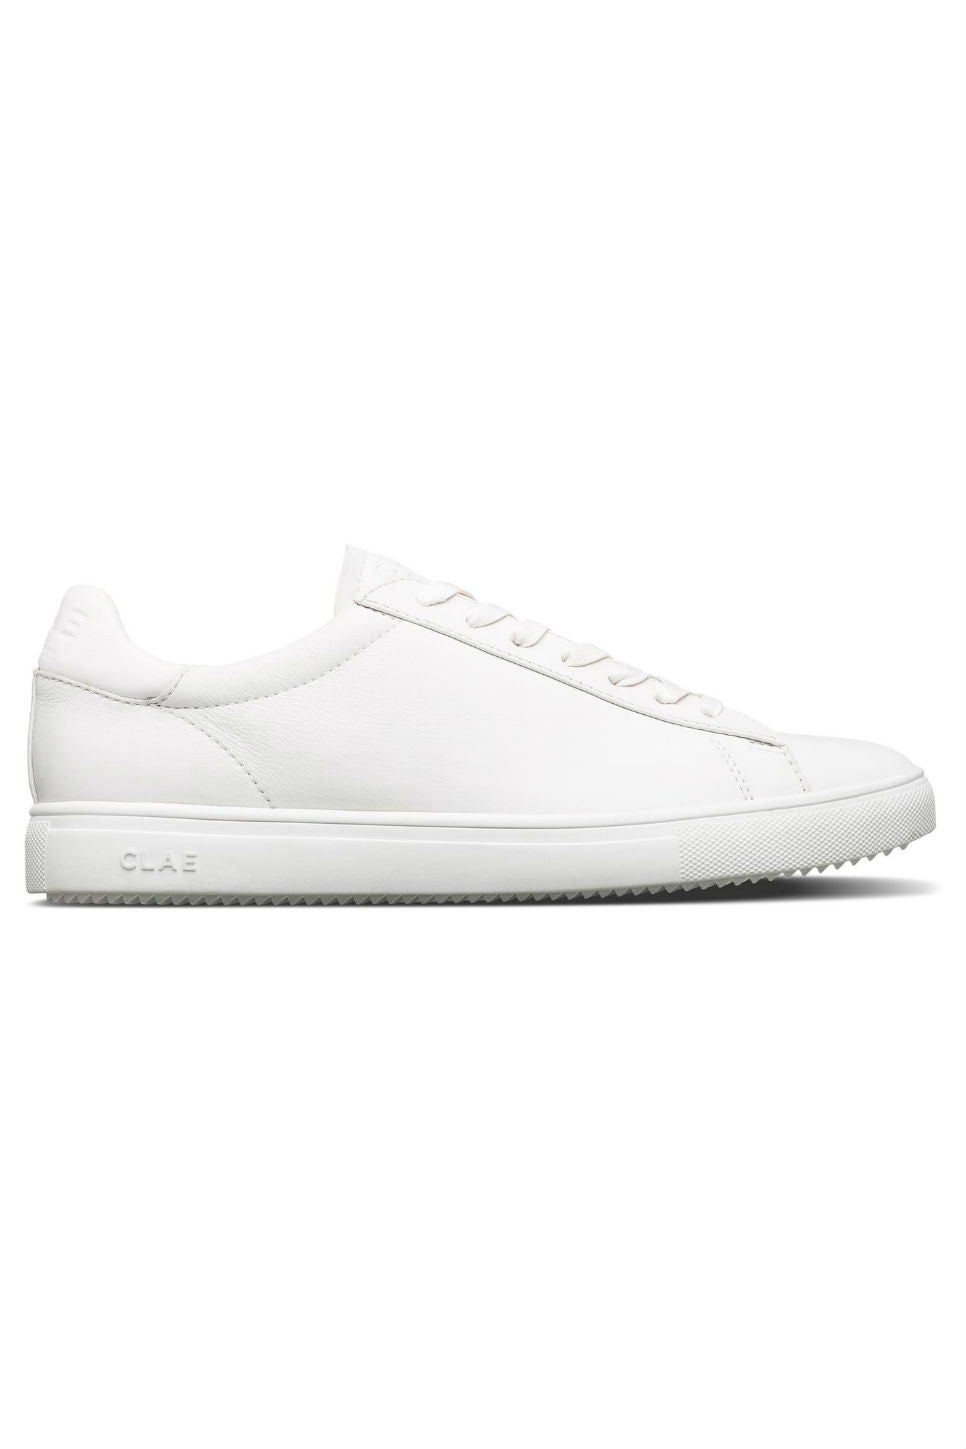 Clae - Bradley - Triple White - Side